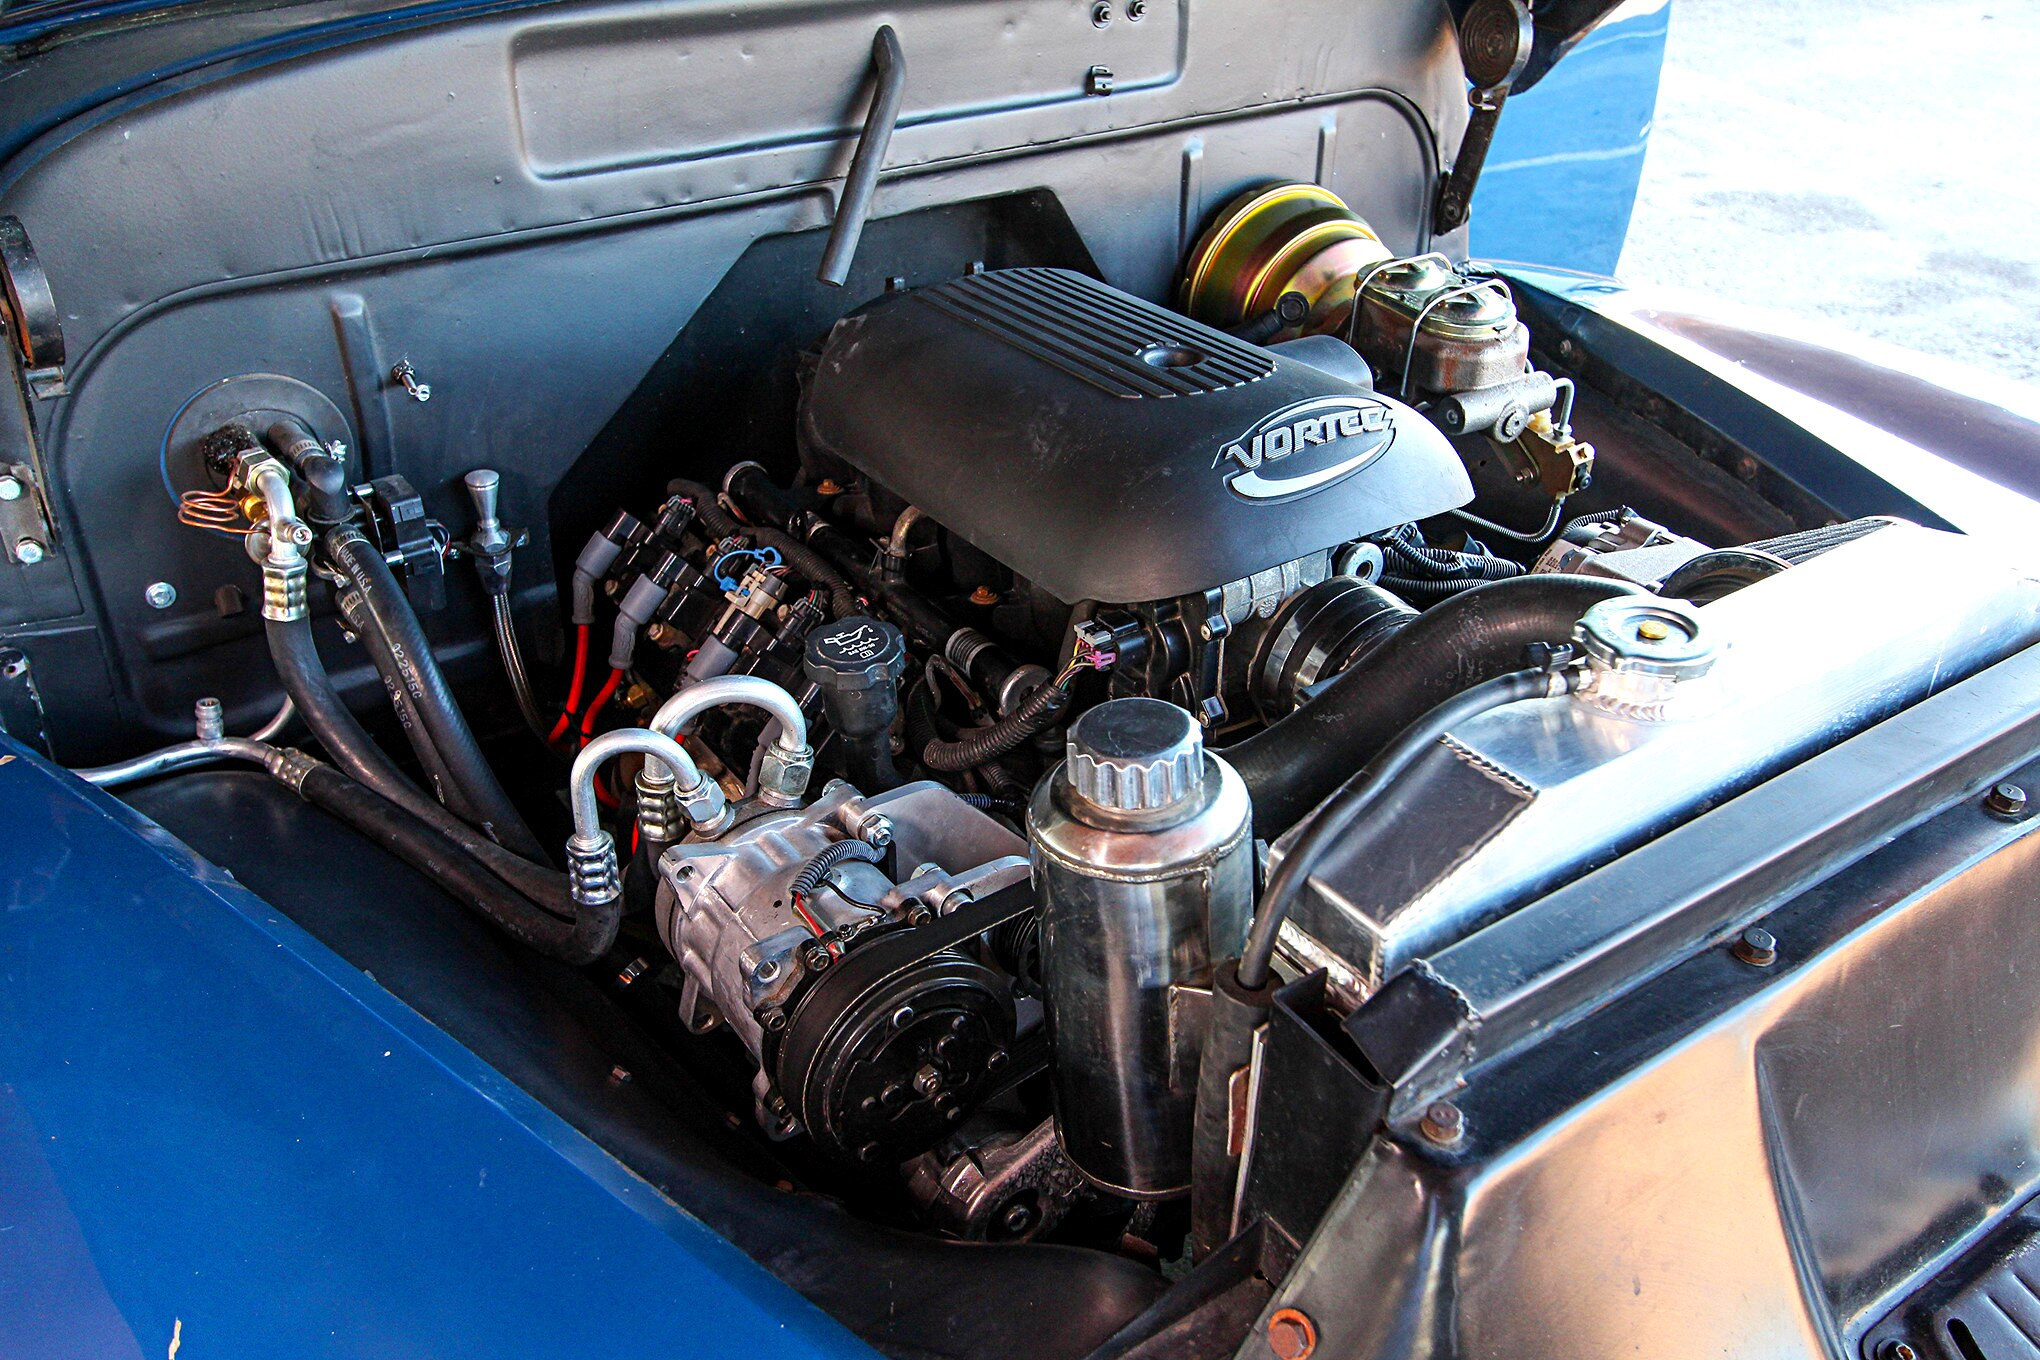 Curp O Chevrolet Impala Convertible Front in addition S L besides Chevrolet Impala together with Lrmp O Lowrider On The Blvd Impala additionally Chevrolet Convertible Interior Bench Seats Alt. on chevy 1959 chevrolet impala